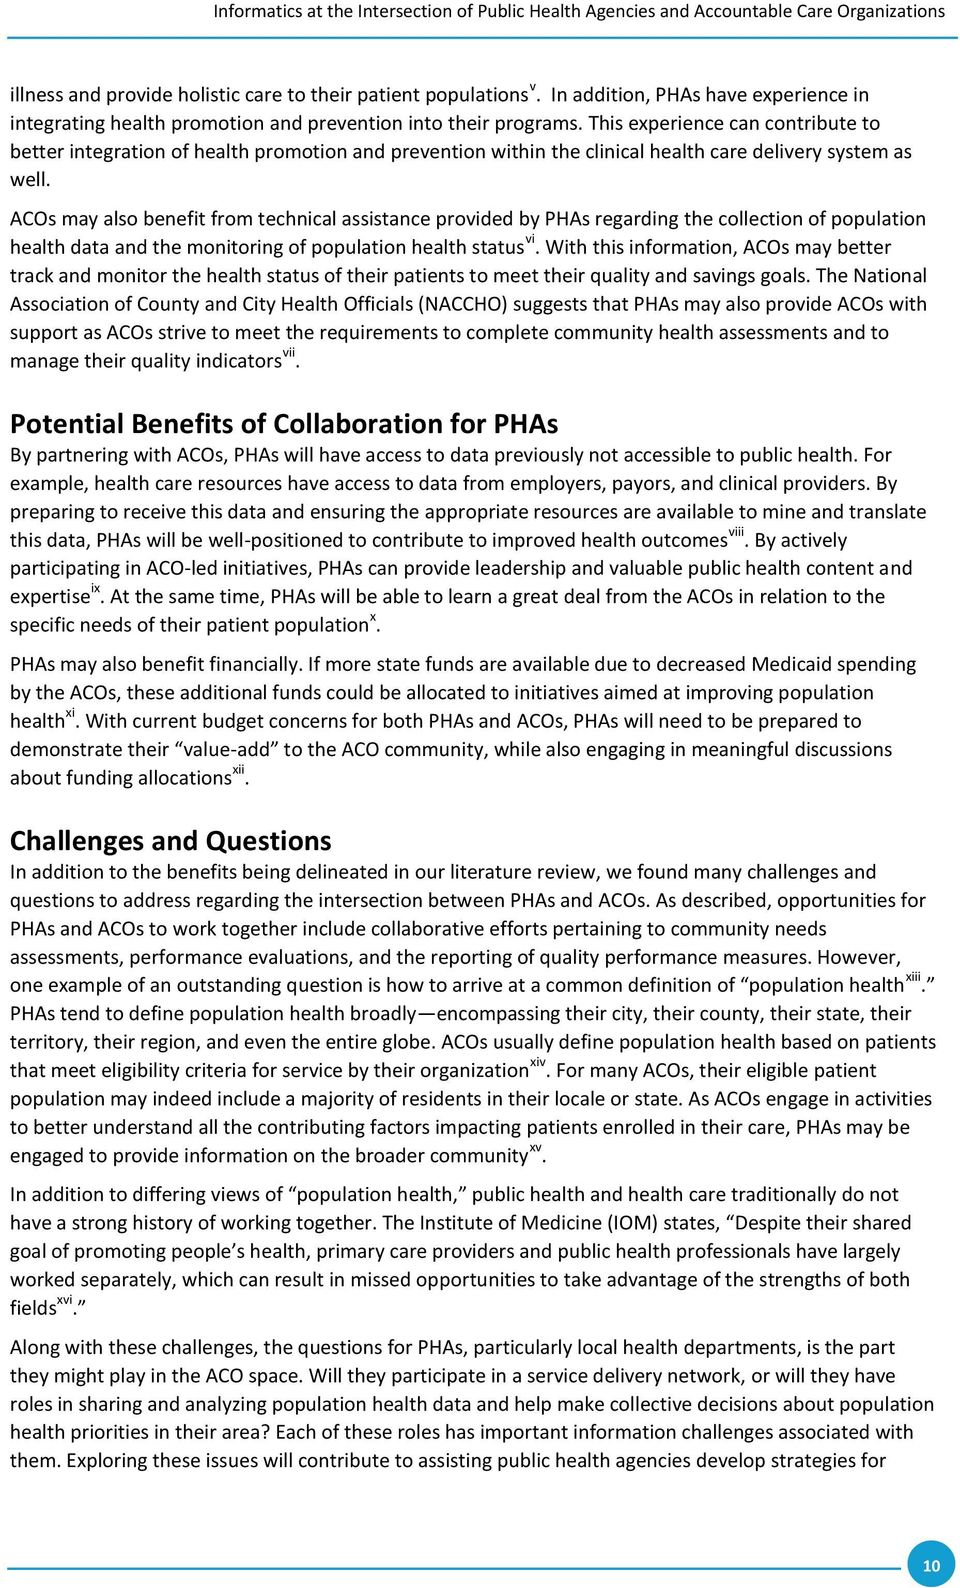 ACOs may also benefit from technical assistance provided by PHAs regarding the collection of population health data and the monitoring of population health status vi.